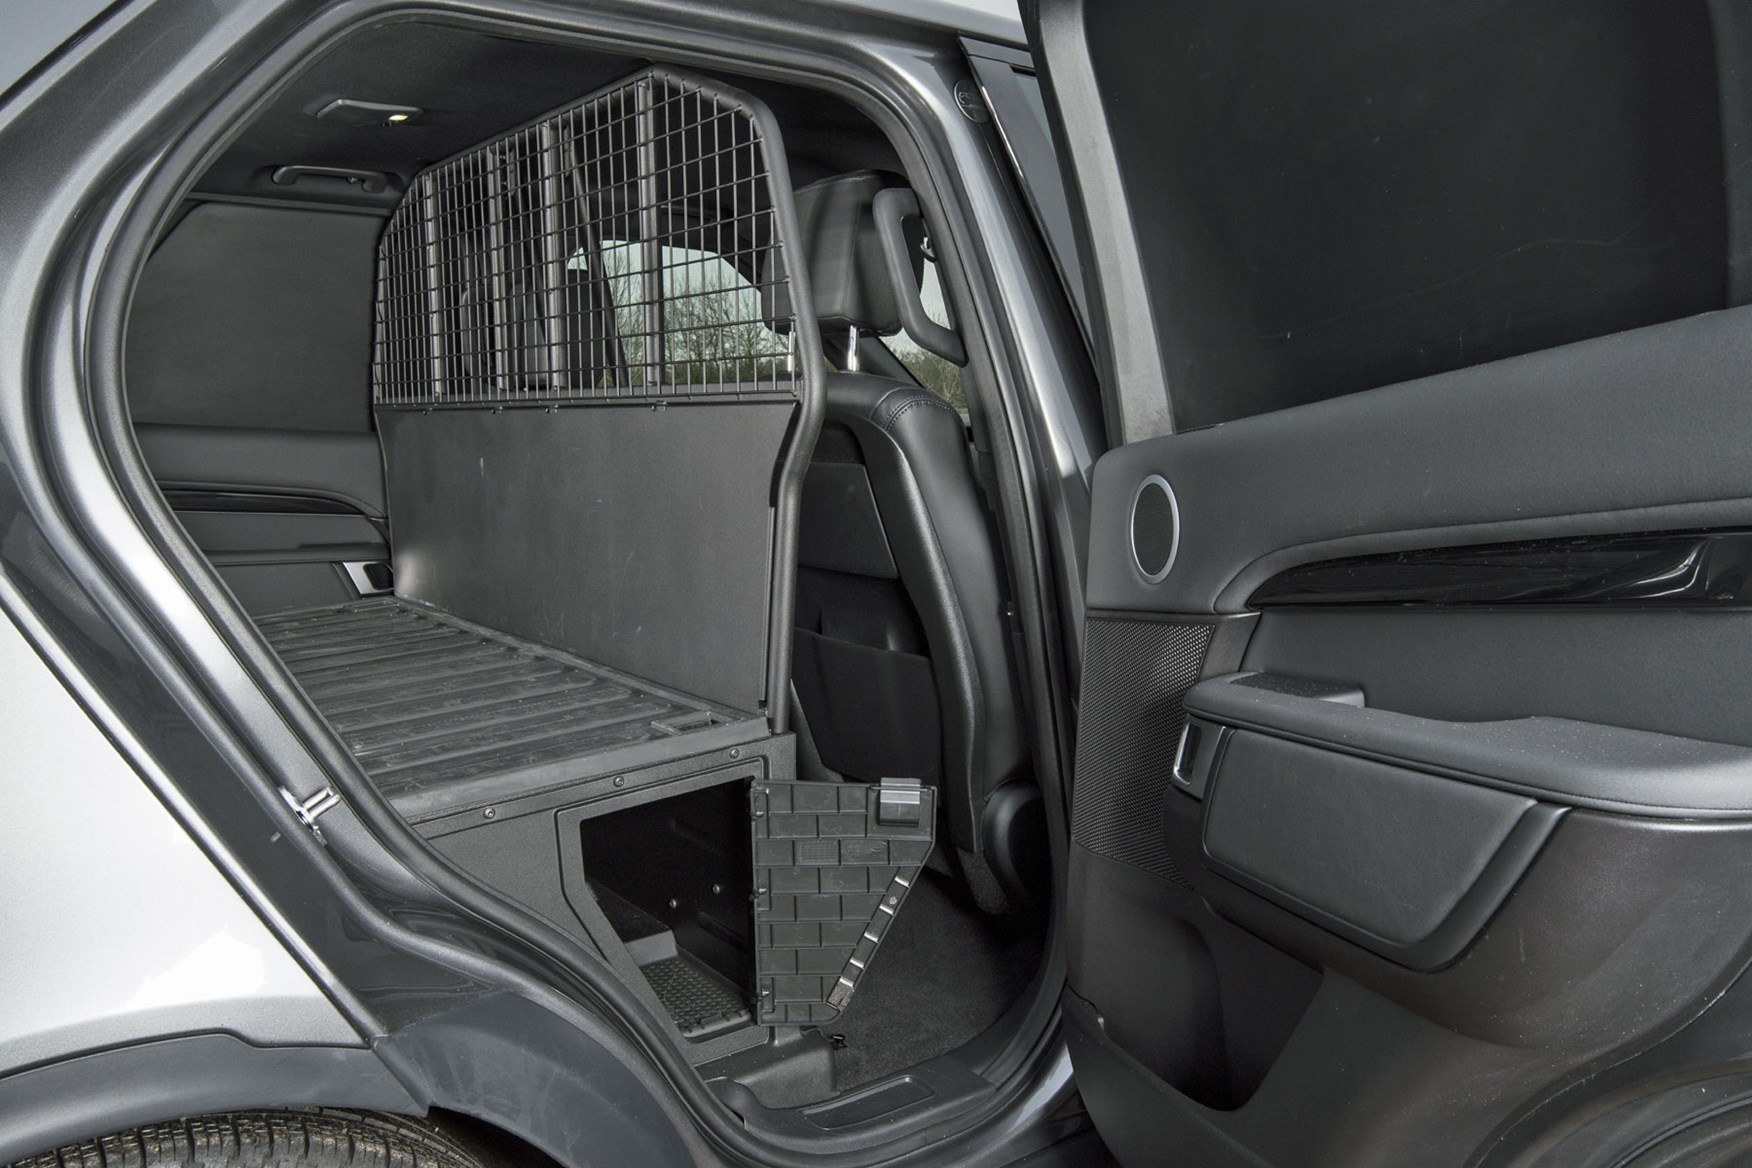 Land Rover Discovery Commercial - underfloor storage accessed through side doors